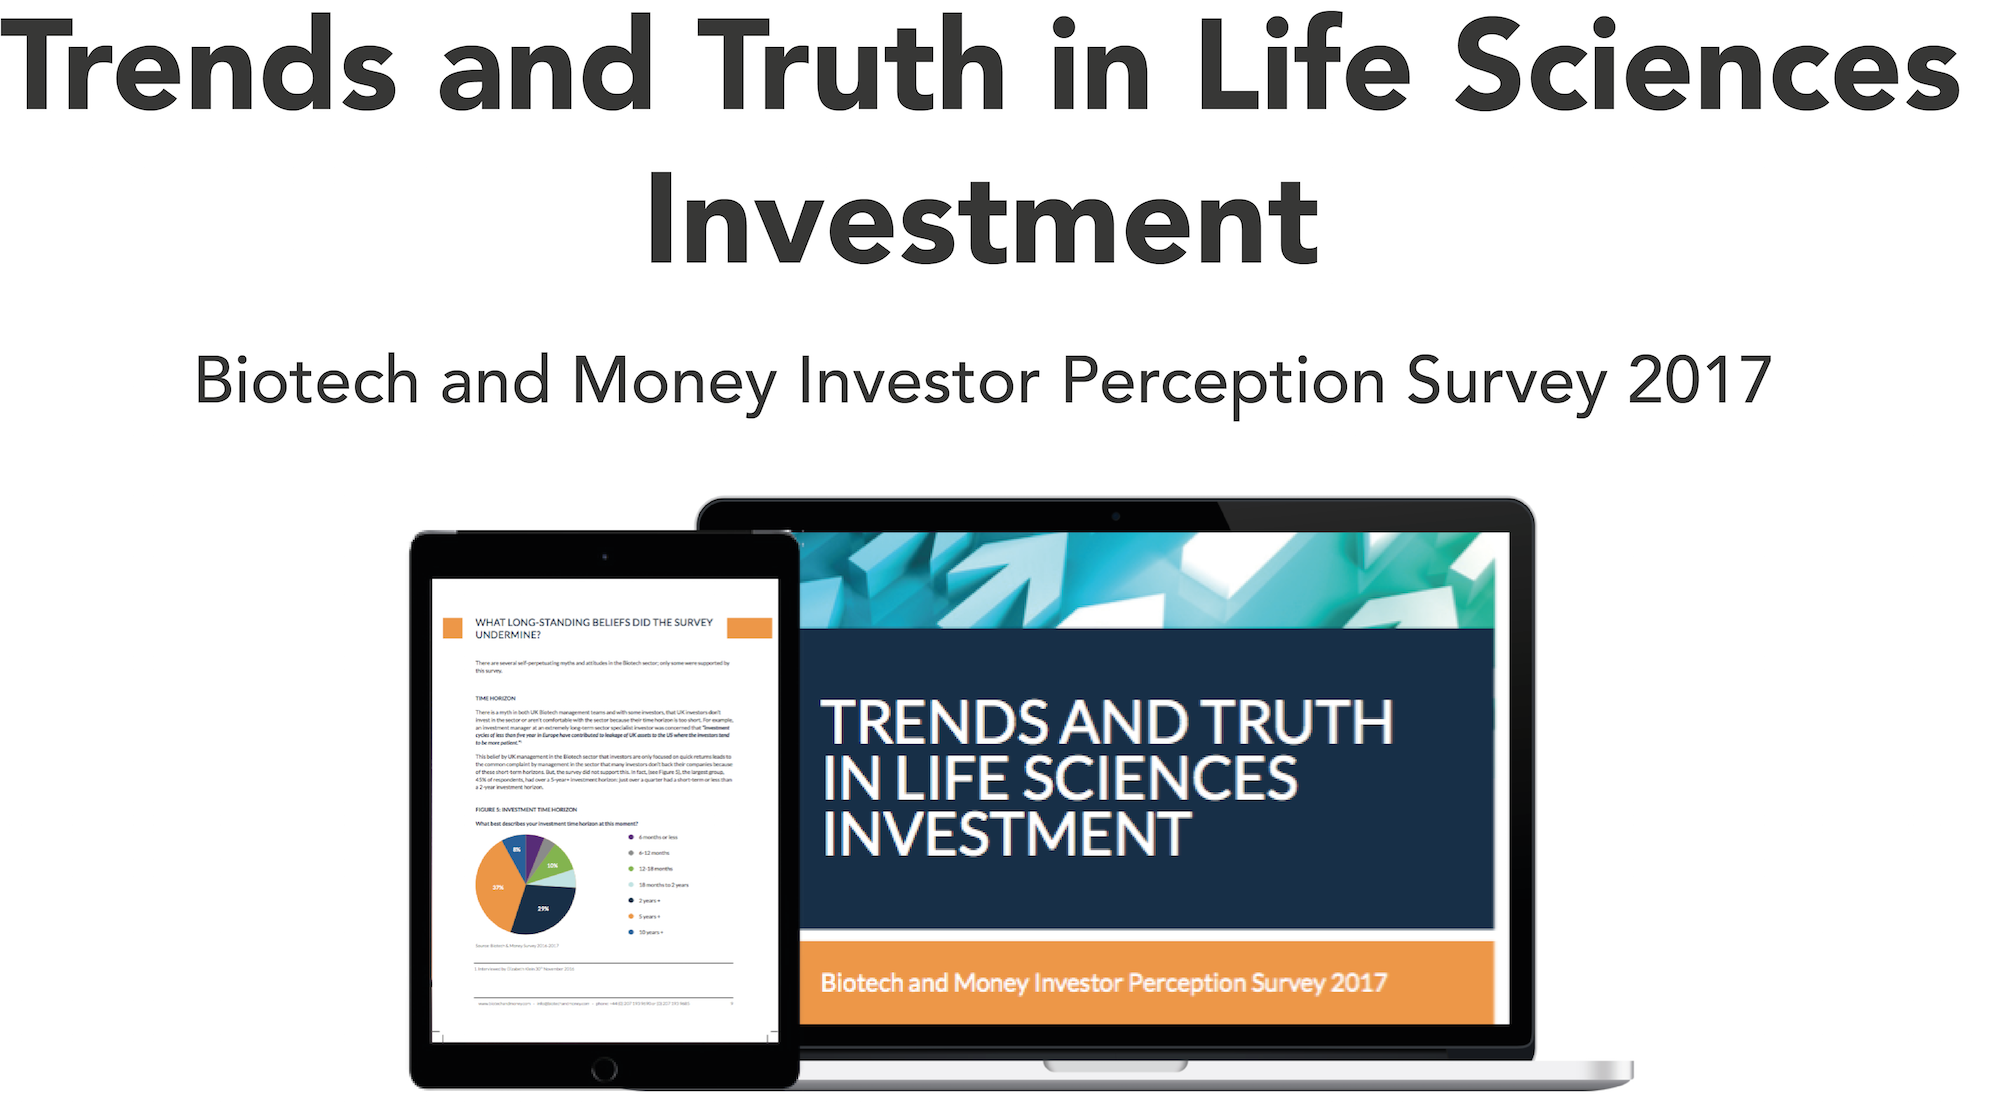 TRENDS AND TRUTH IN LIFE SCIENCES INVESTMENT